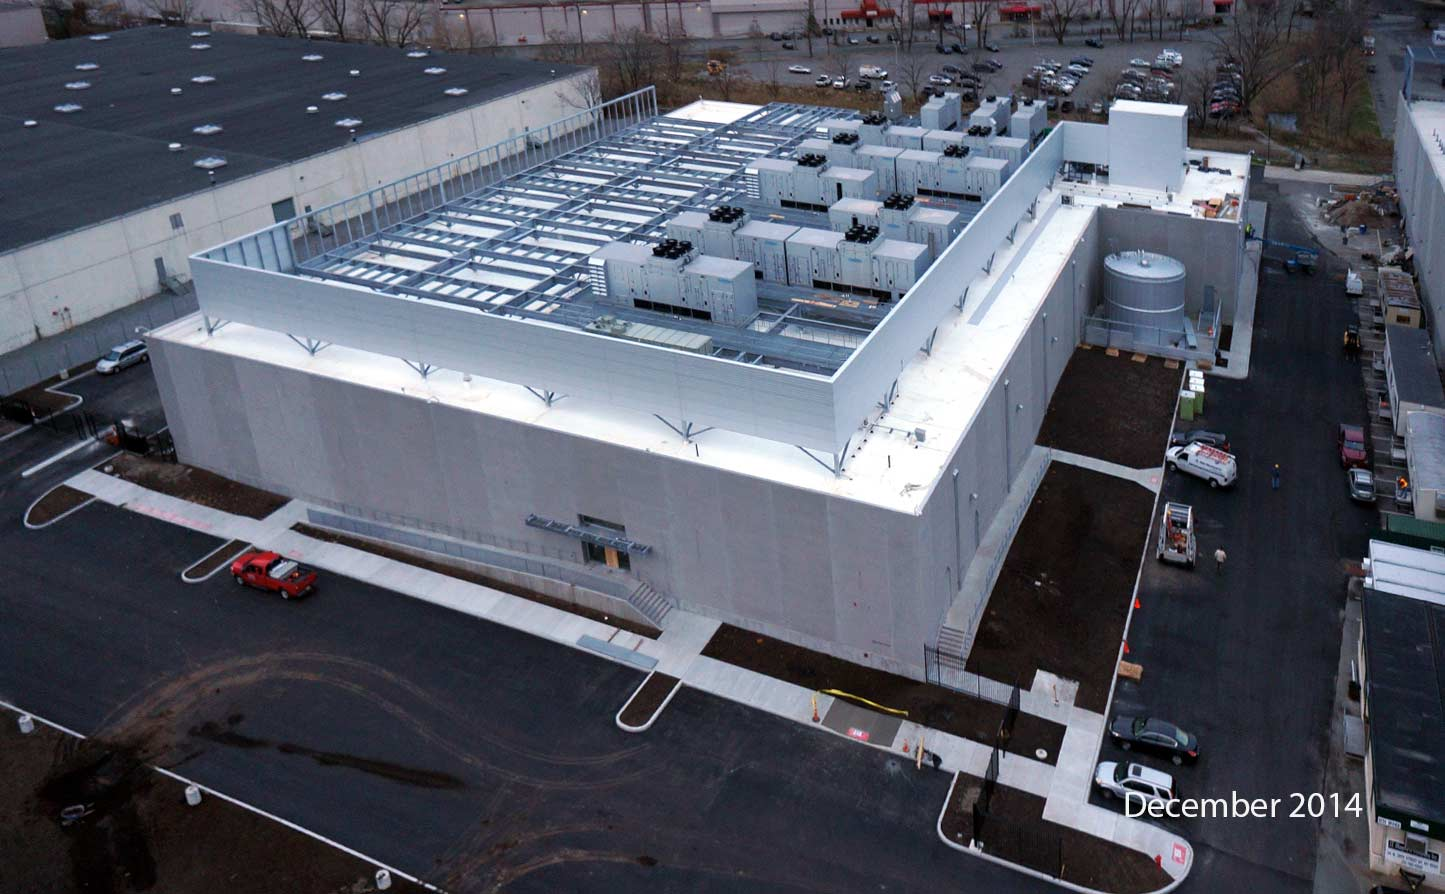 After: Elevated exterior view of the of completed construction of the NY6 data center constructed by general contractor J.T. Magen & Company Inc. in Secaucus, New Jersey.